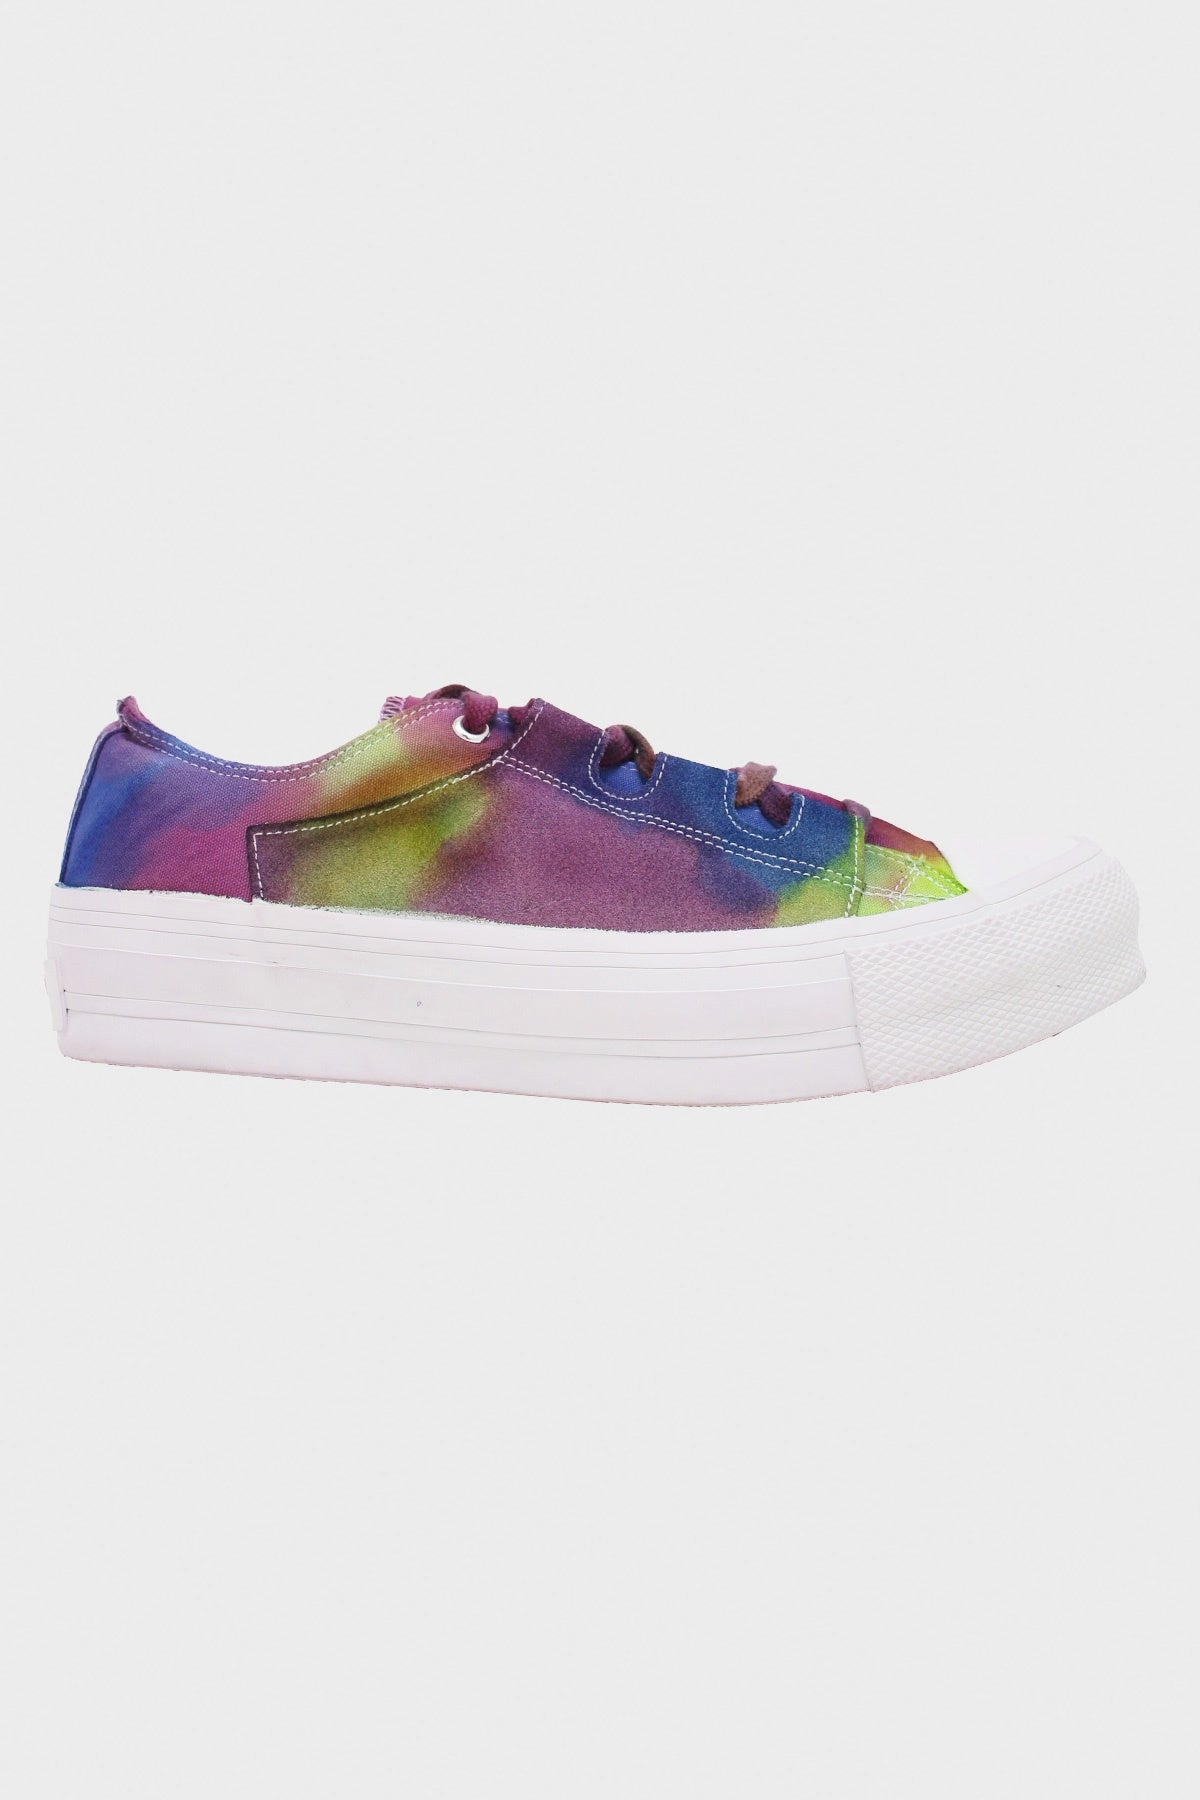 Needles - Asymmetric Ghillie Sneaker - Overdye Purple/Green/Blue - Canoe Club